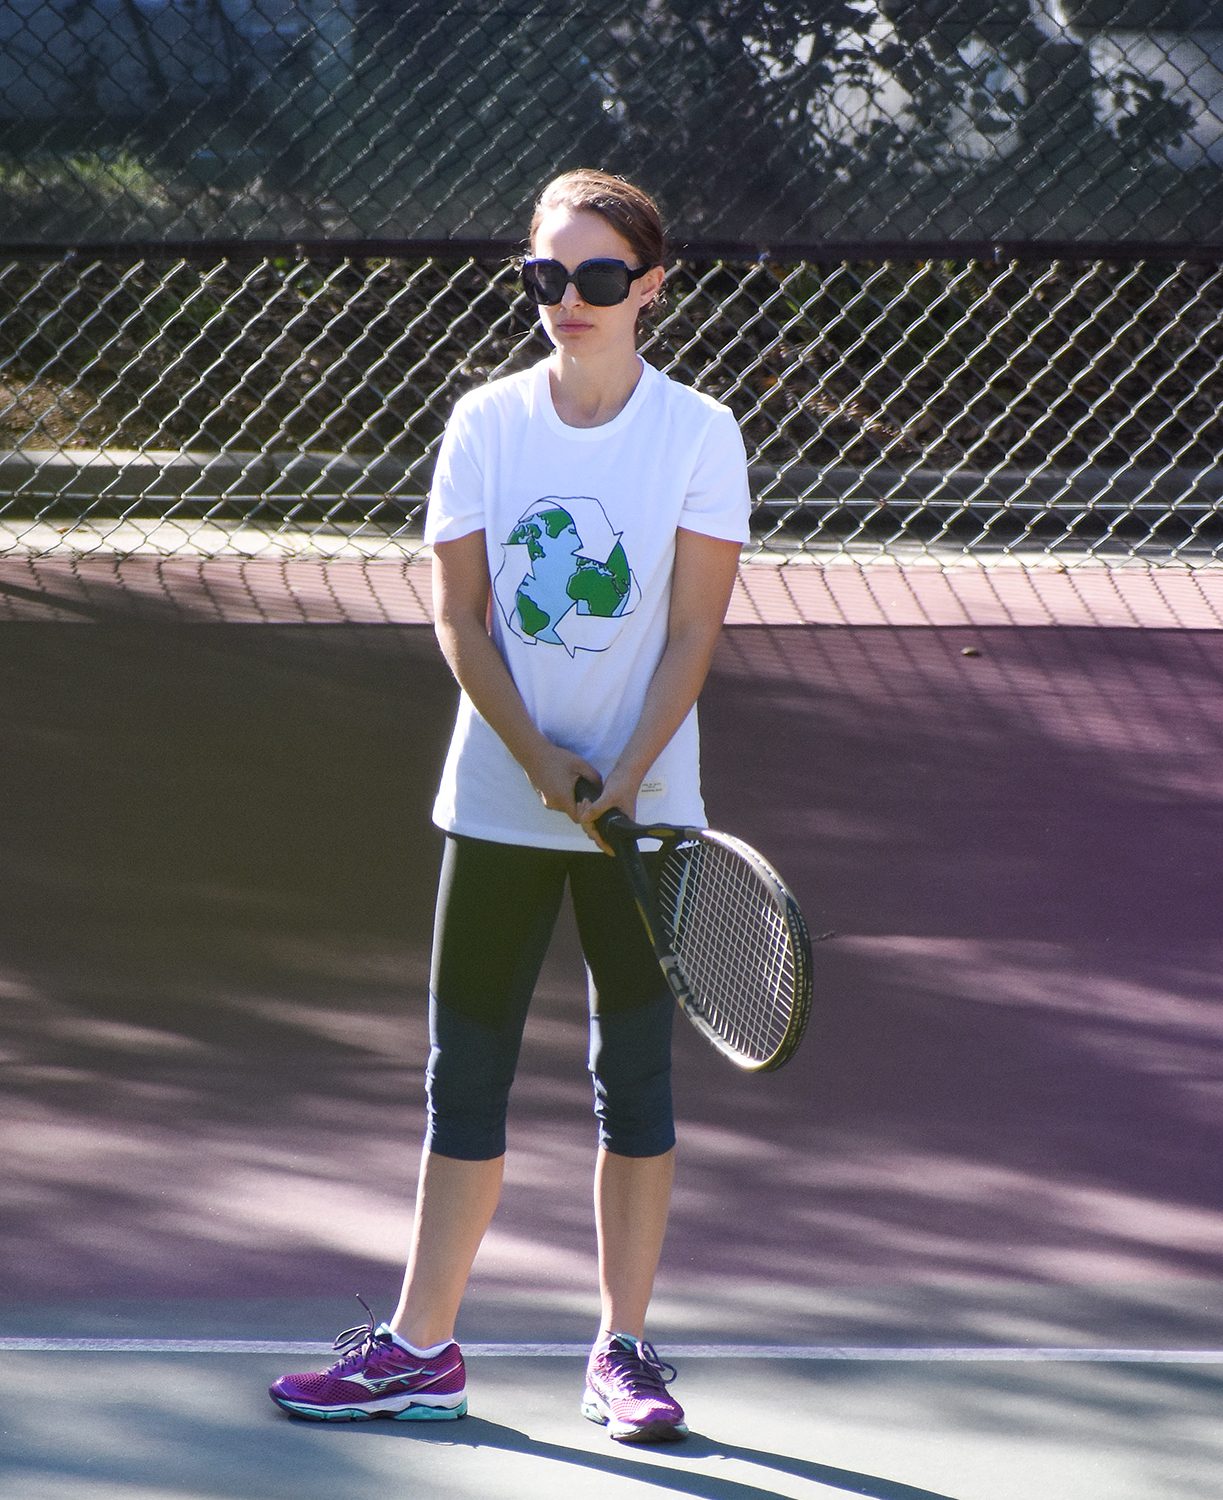 Natalie Portman continues to improve on her form as she is seen while on Tennis practice in Los Angeles.